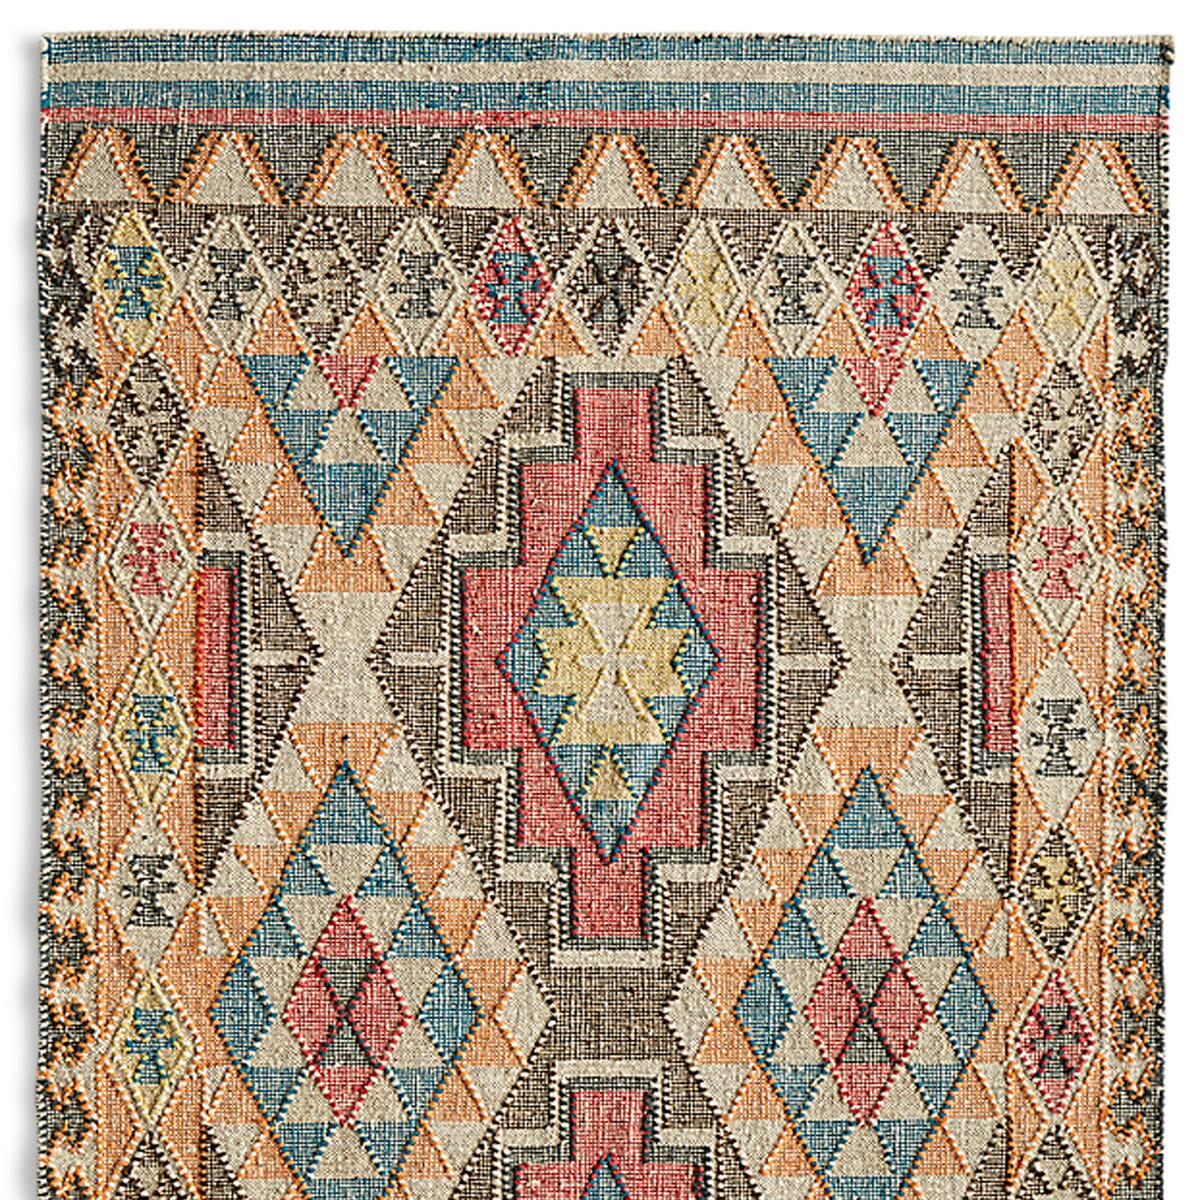 FADED DIAMONDS KILIM RUG - SM: View 1